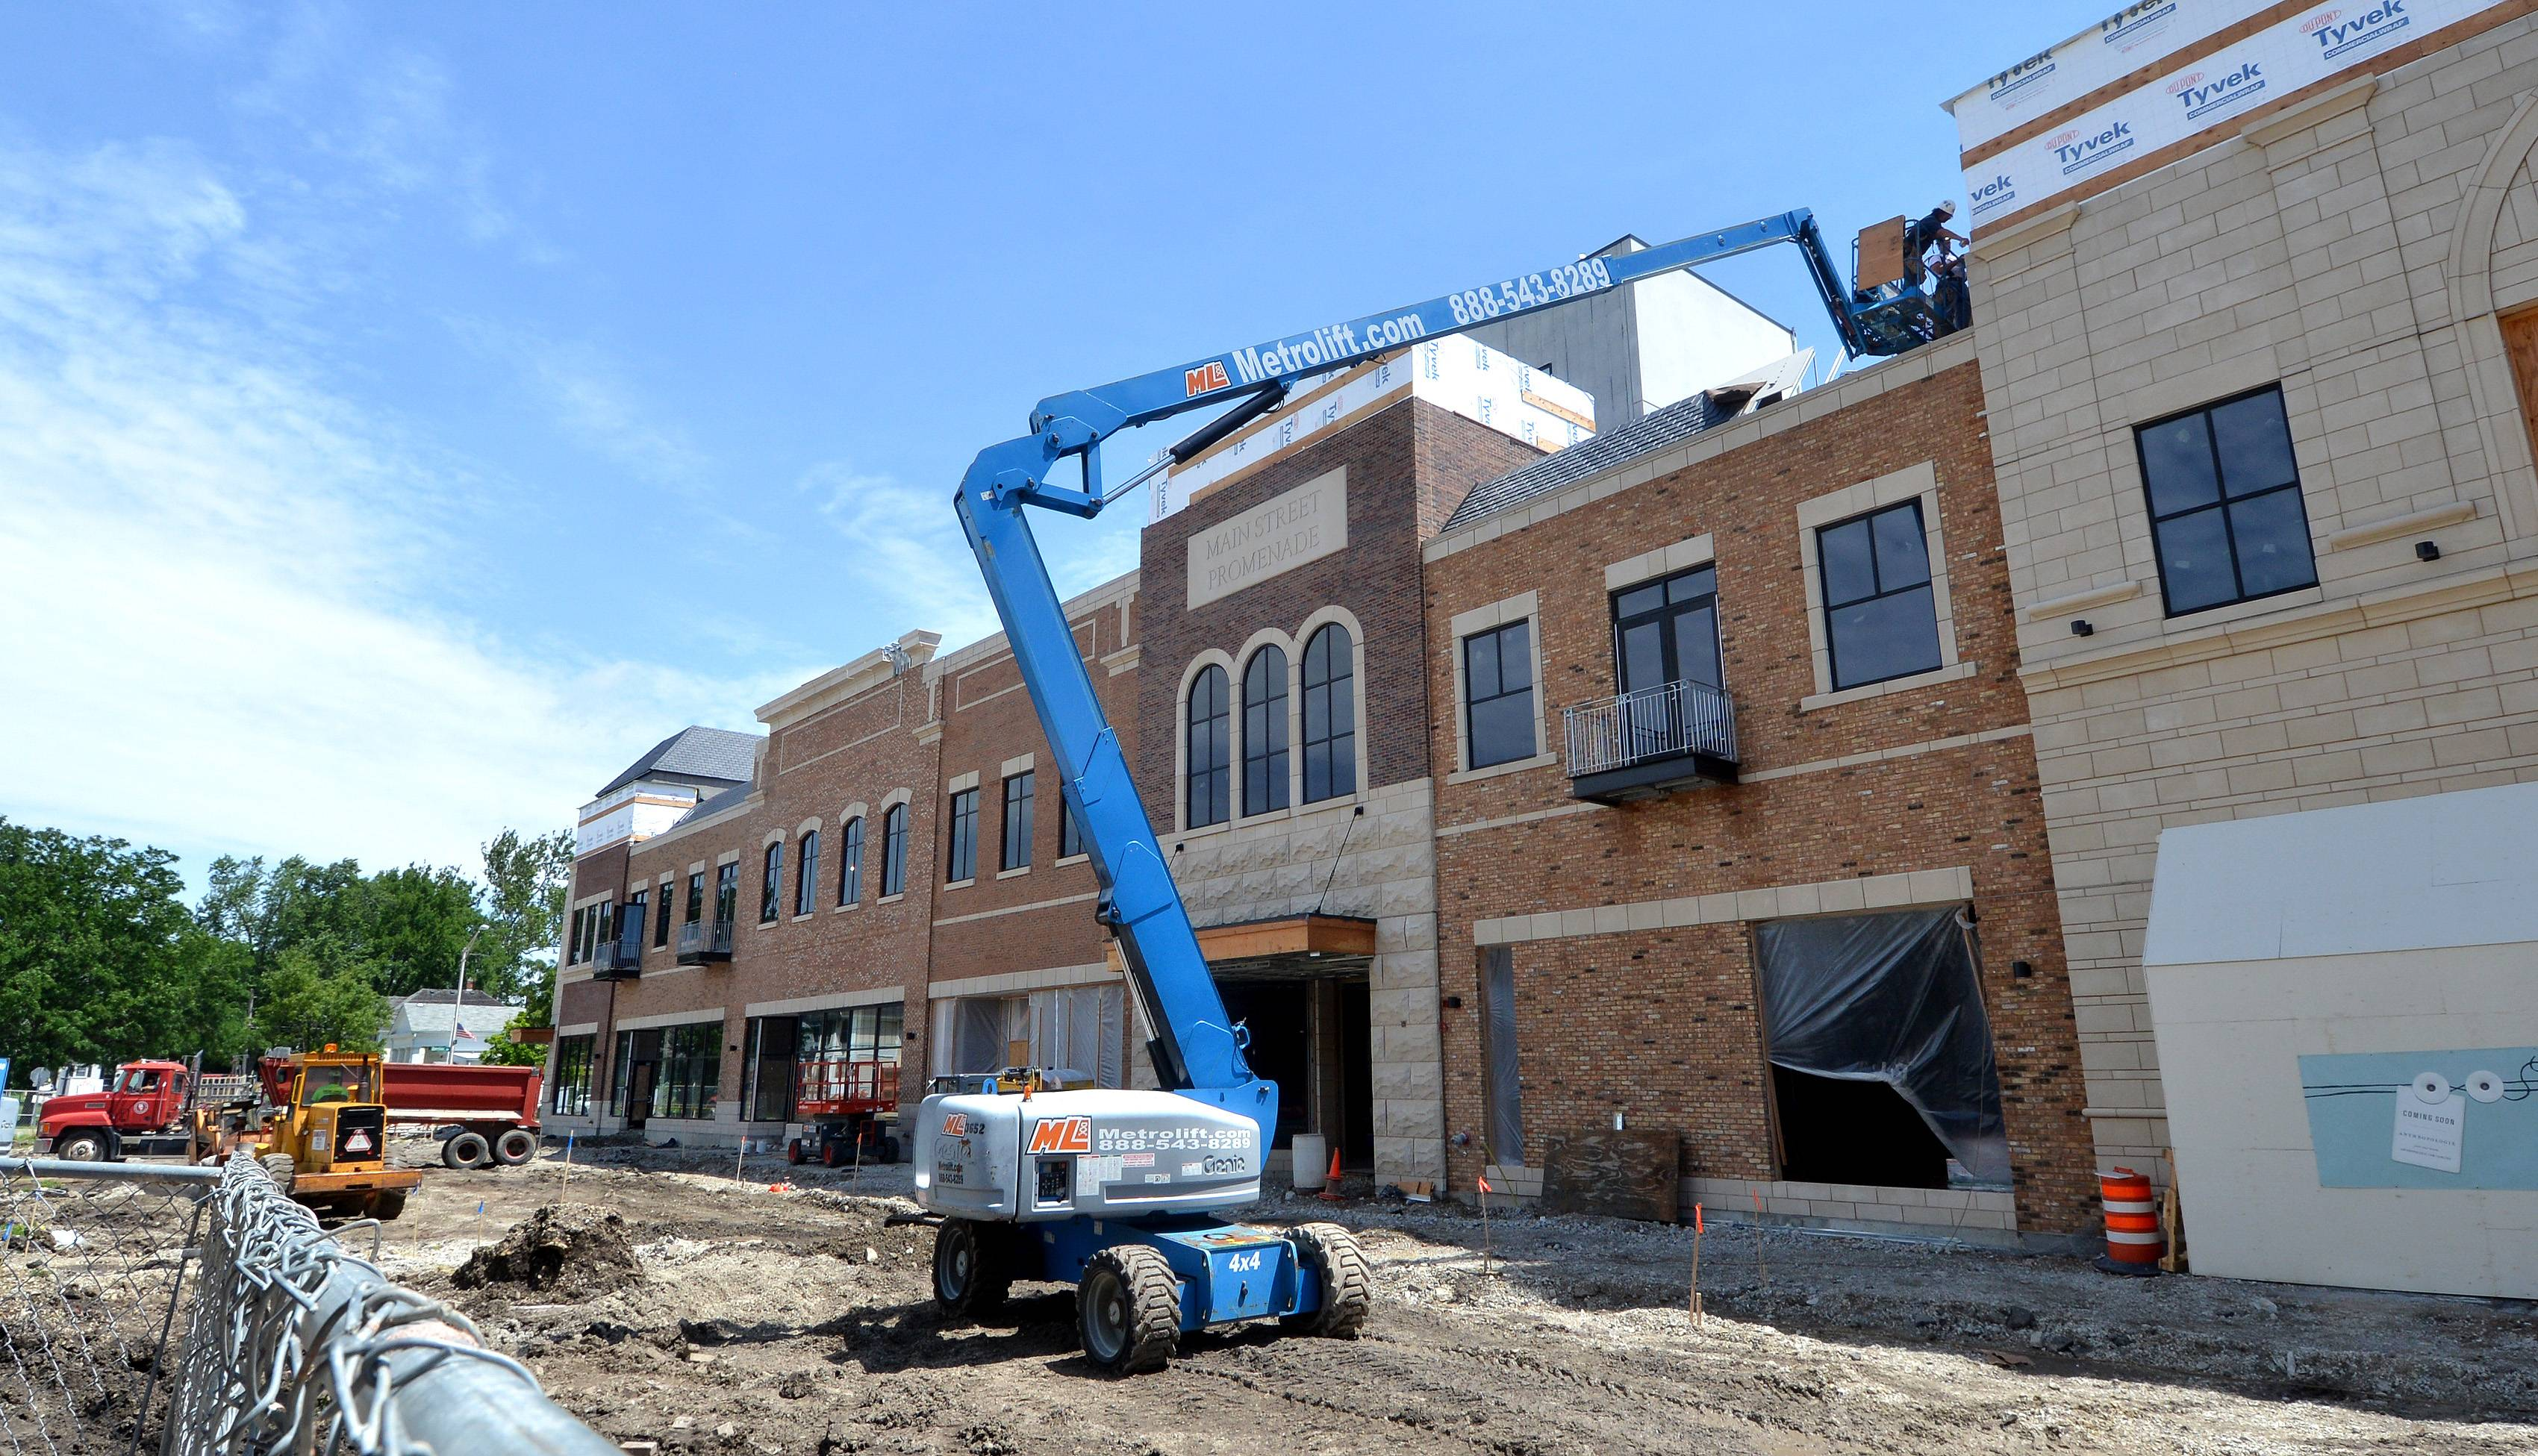 Naperville's Promenade East to 'grow the downtown'